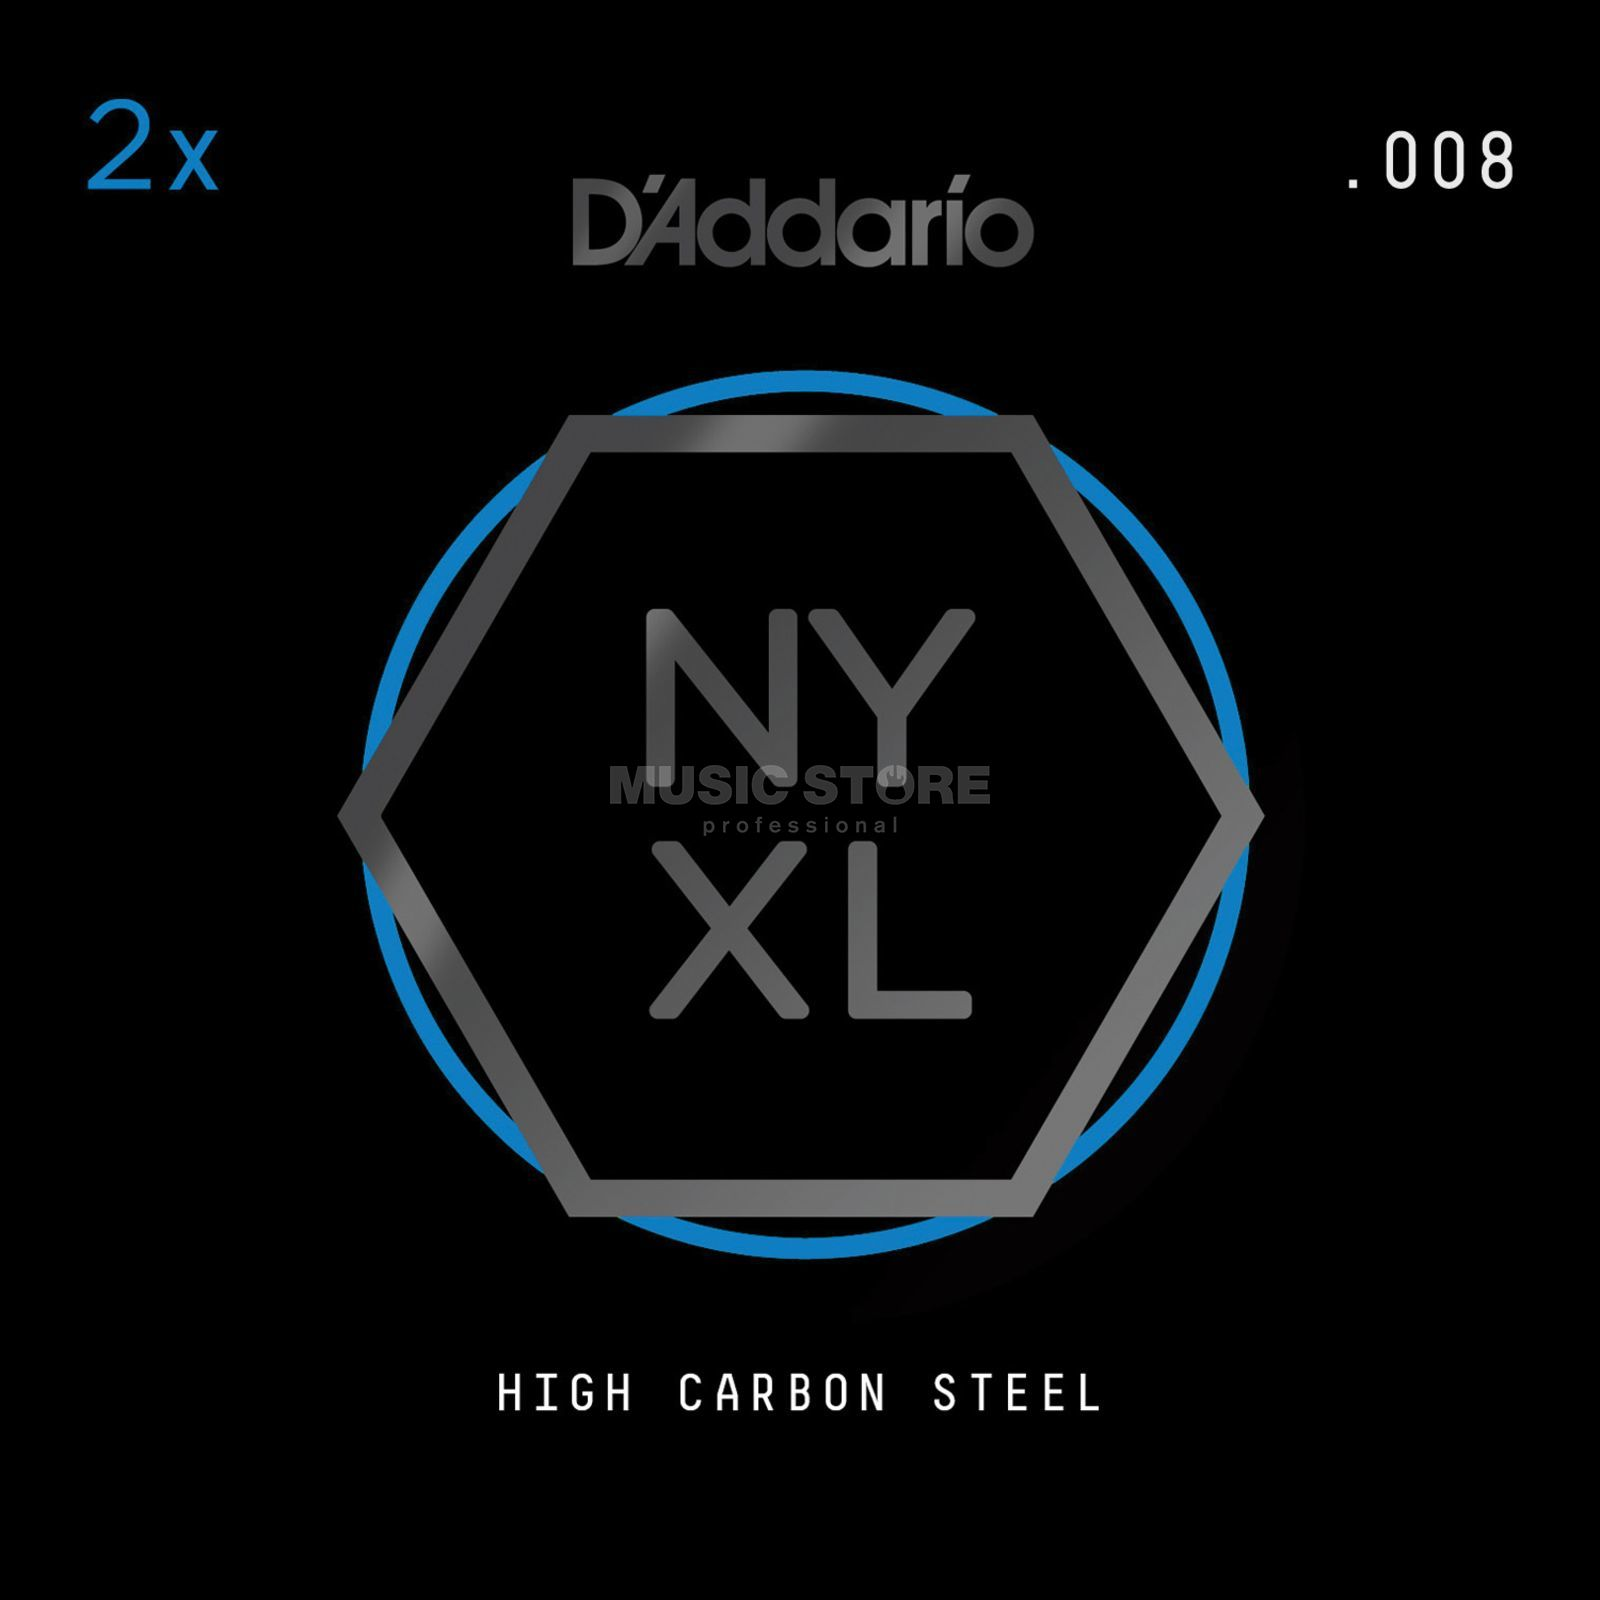 D'Addario NYPL008 Plain Single String 2-Pack - High Carbon Steel Produktbillede